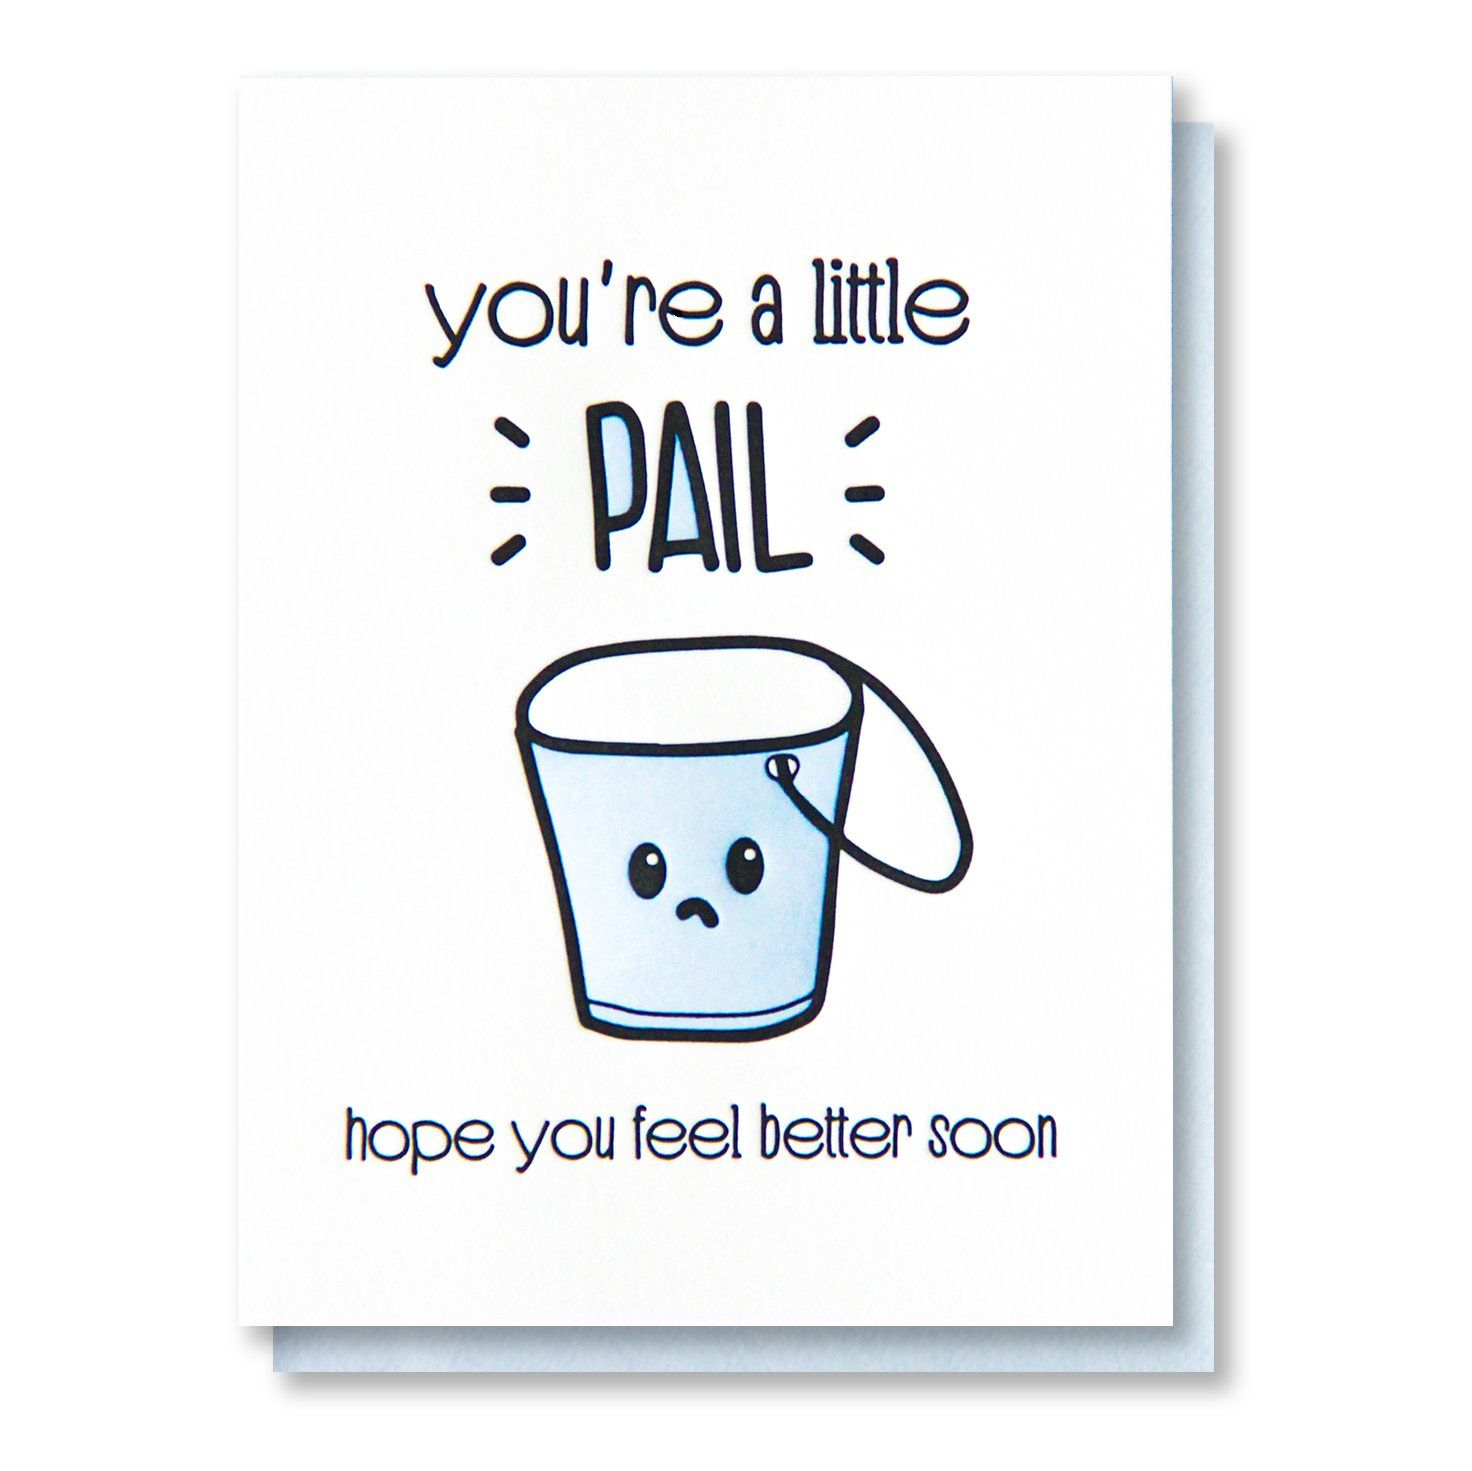 Funny Get Well Letterpress Card Feel Better Soon Pun Little Pail Kiss And Punch Funny Get Well Cards Feel Better Cards Letterpress Cards